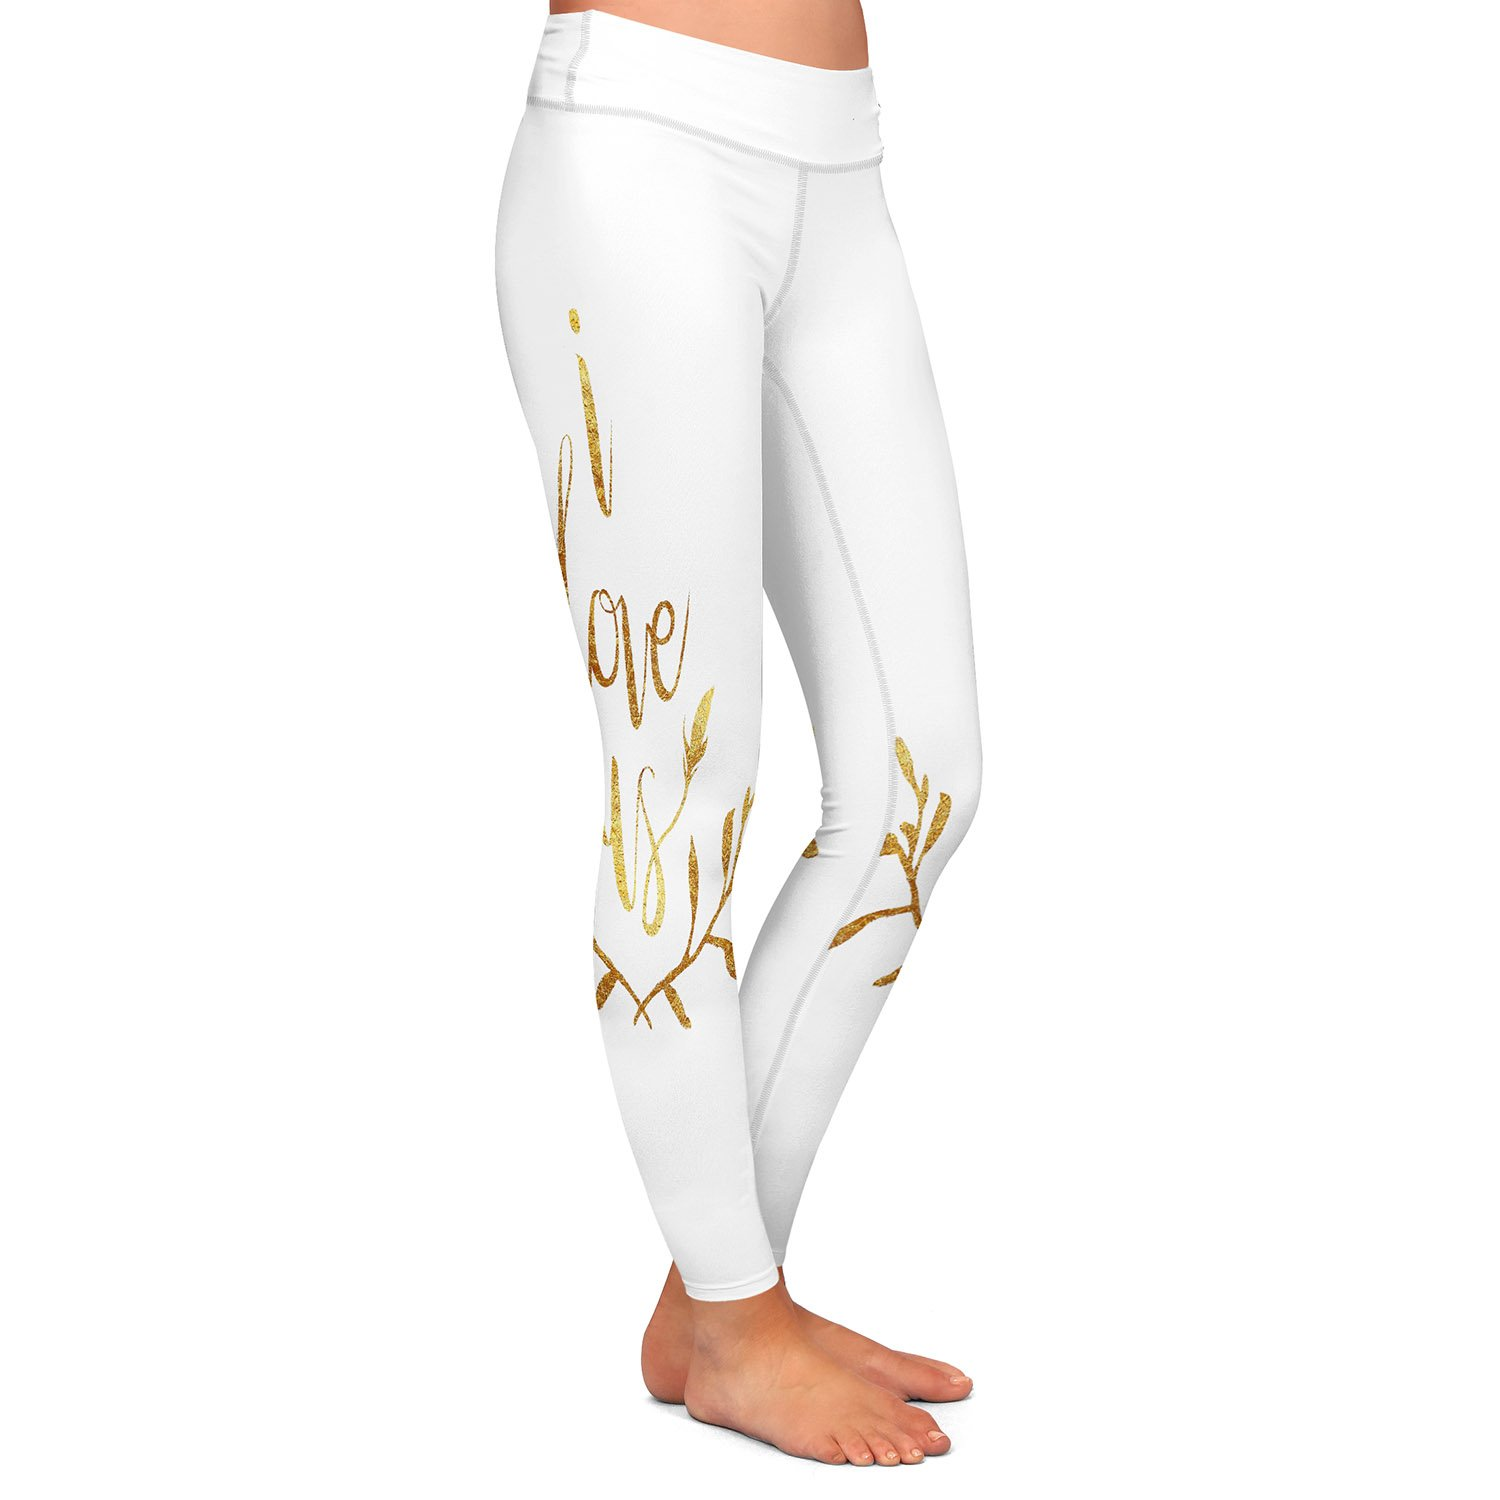 I Love Us Gold White Athletic Yoga Leggings from DiaNoche Designs by Artist Zara Martina